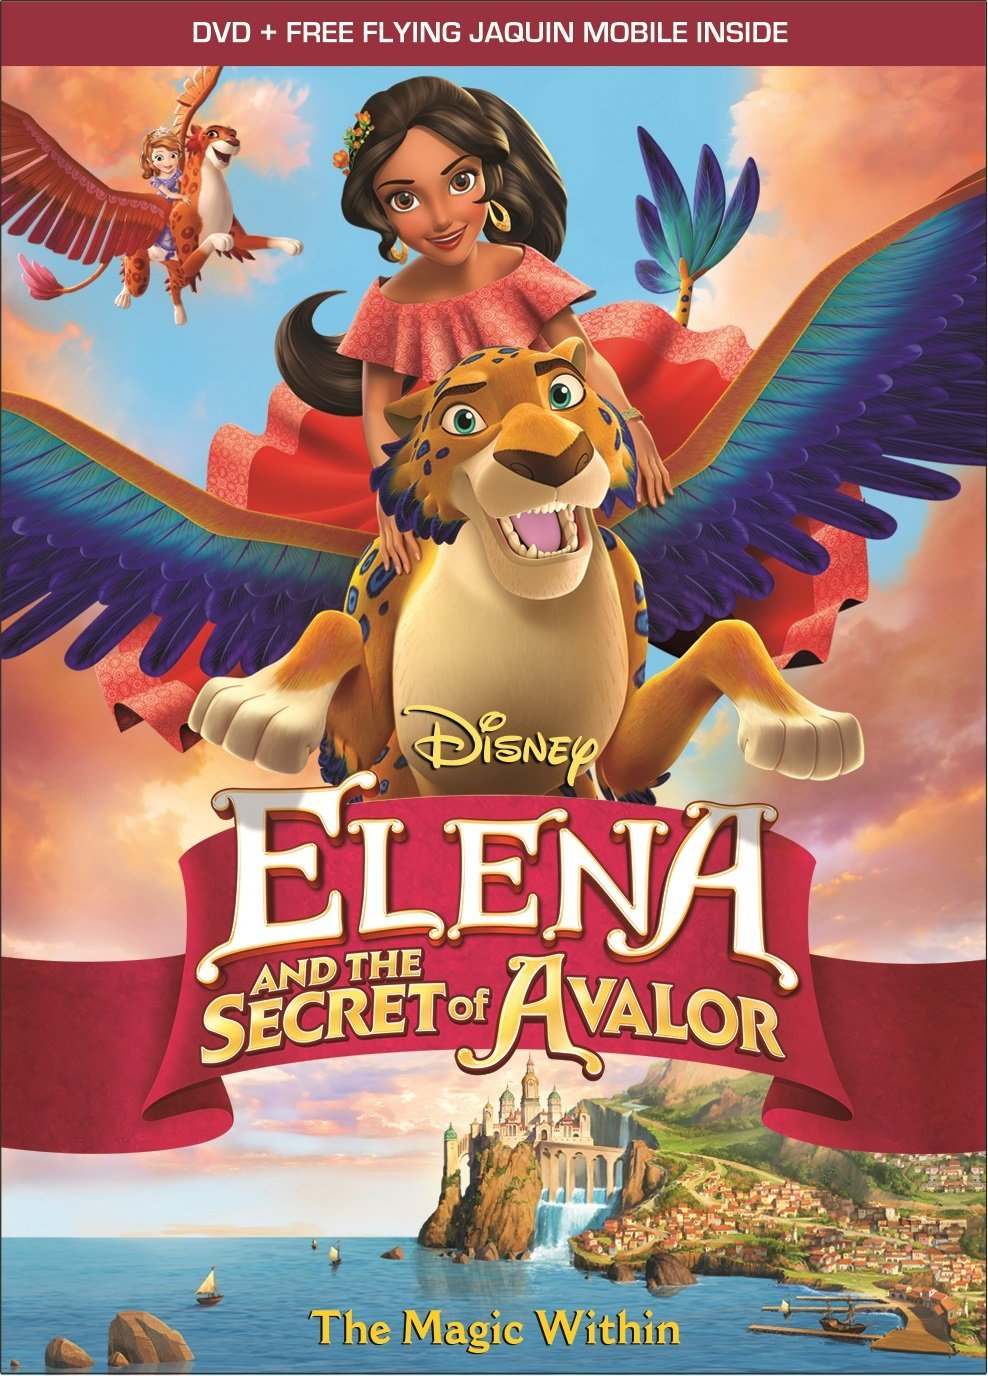 DVD Review: Elena and the Secret of Avalor